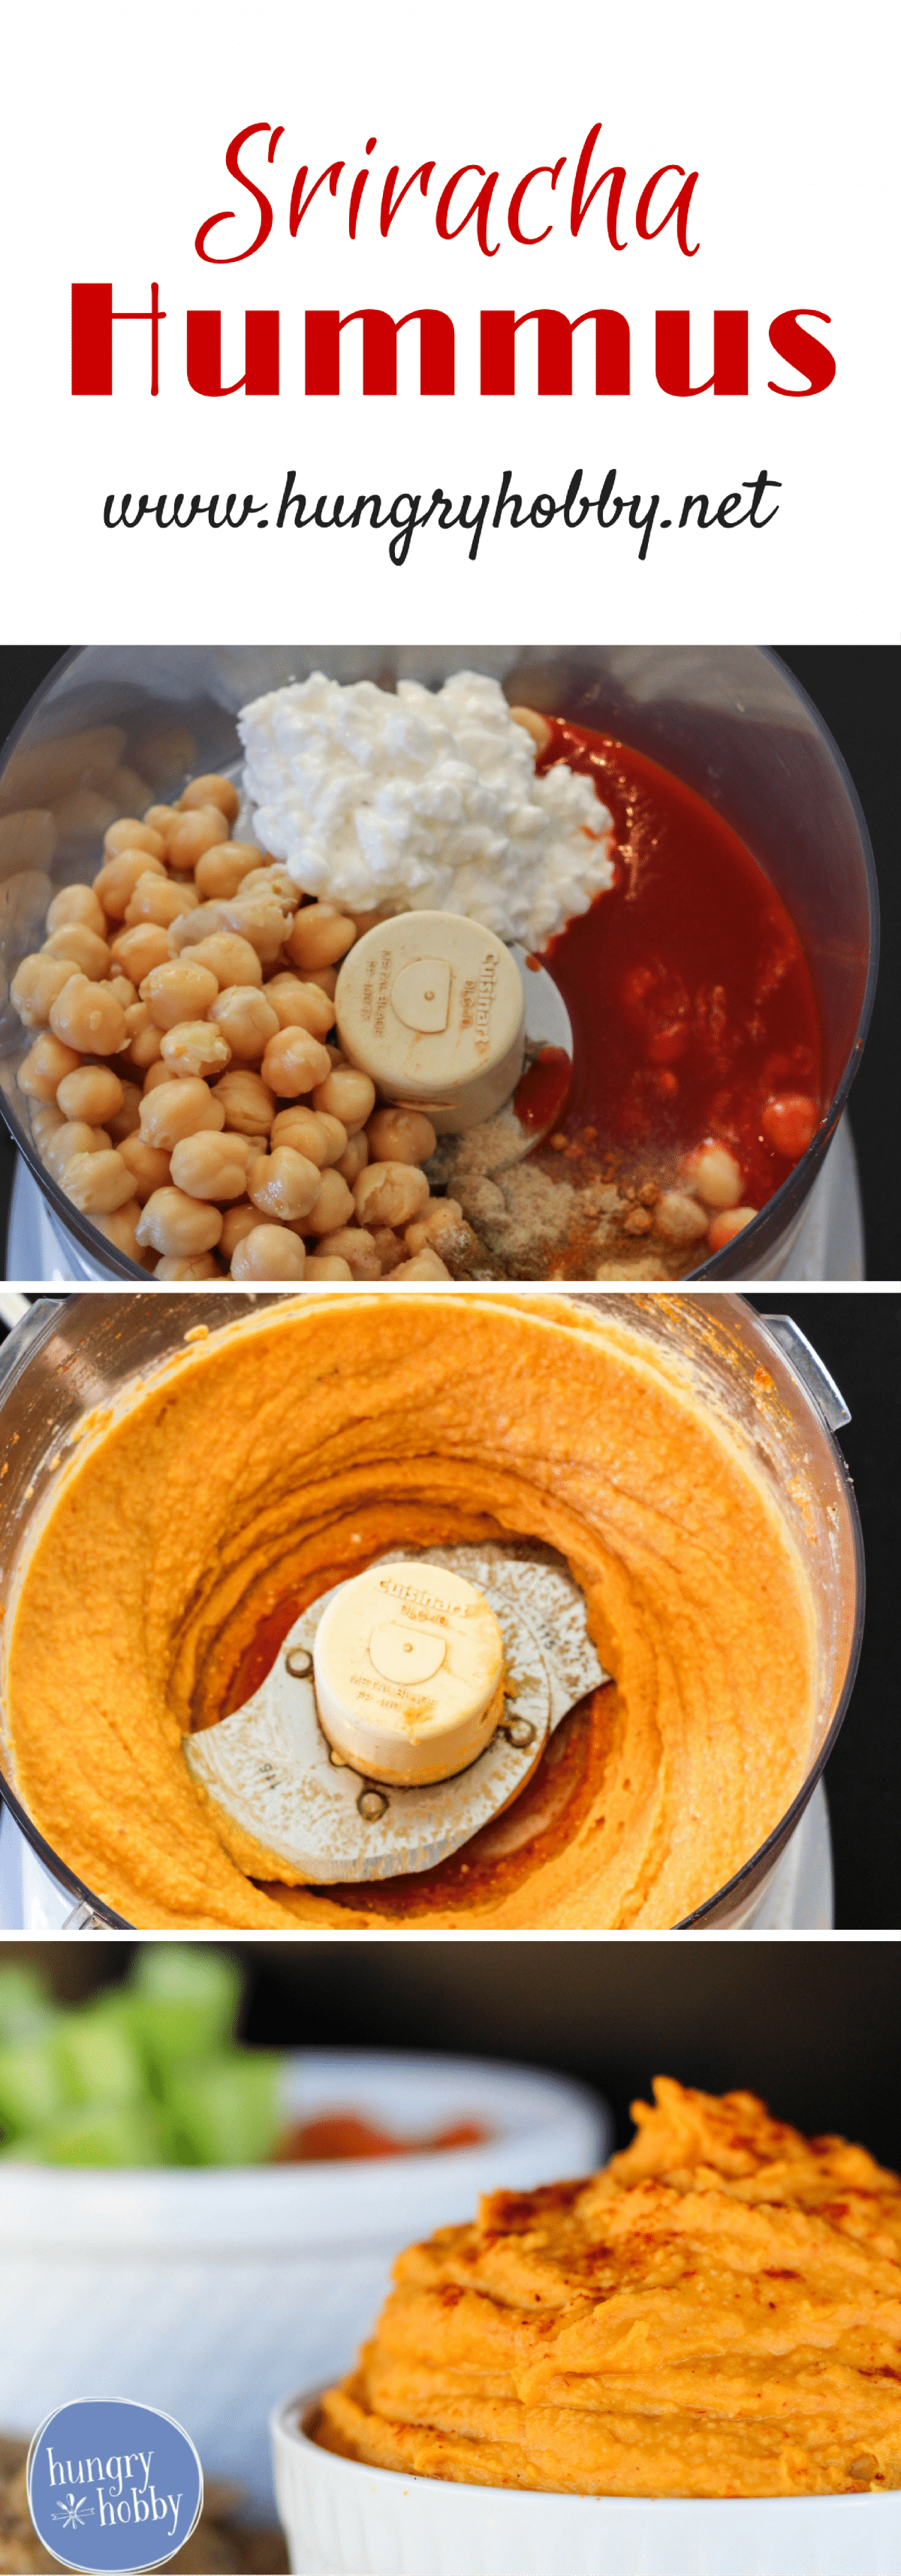 Sriracha Hummus has a protein kick and a spicy flavor kick that is sure to make snack time or game time a win!